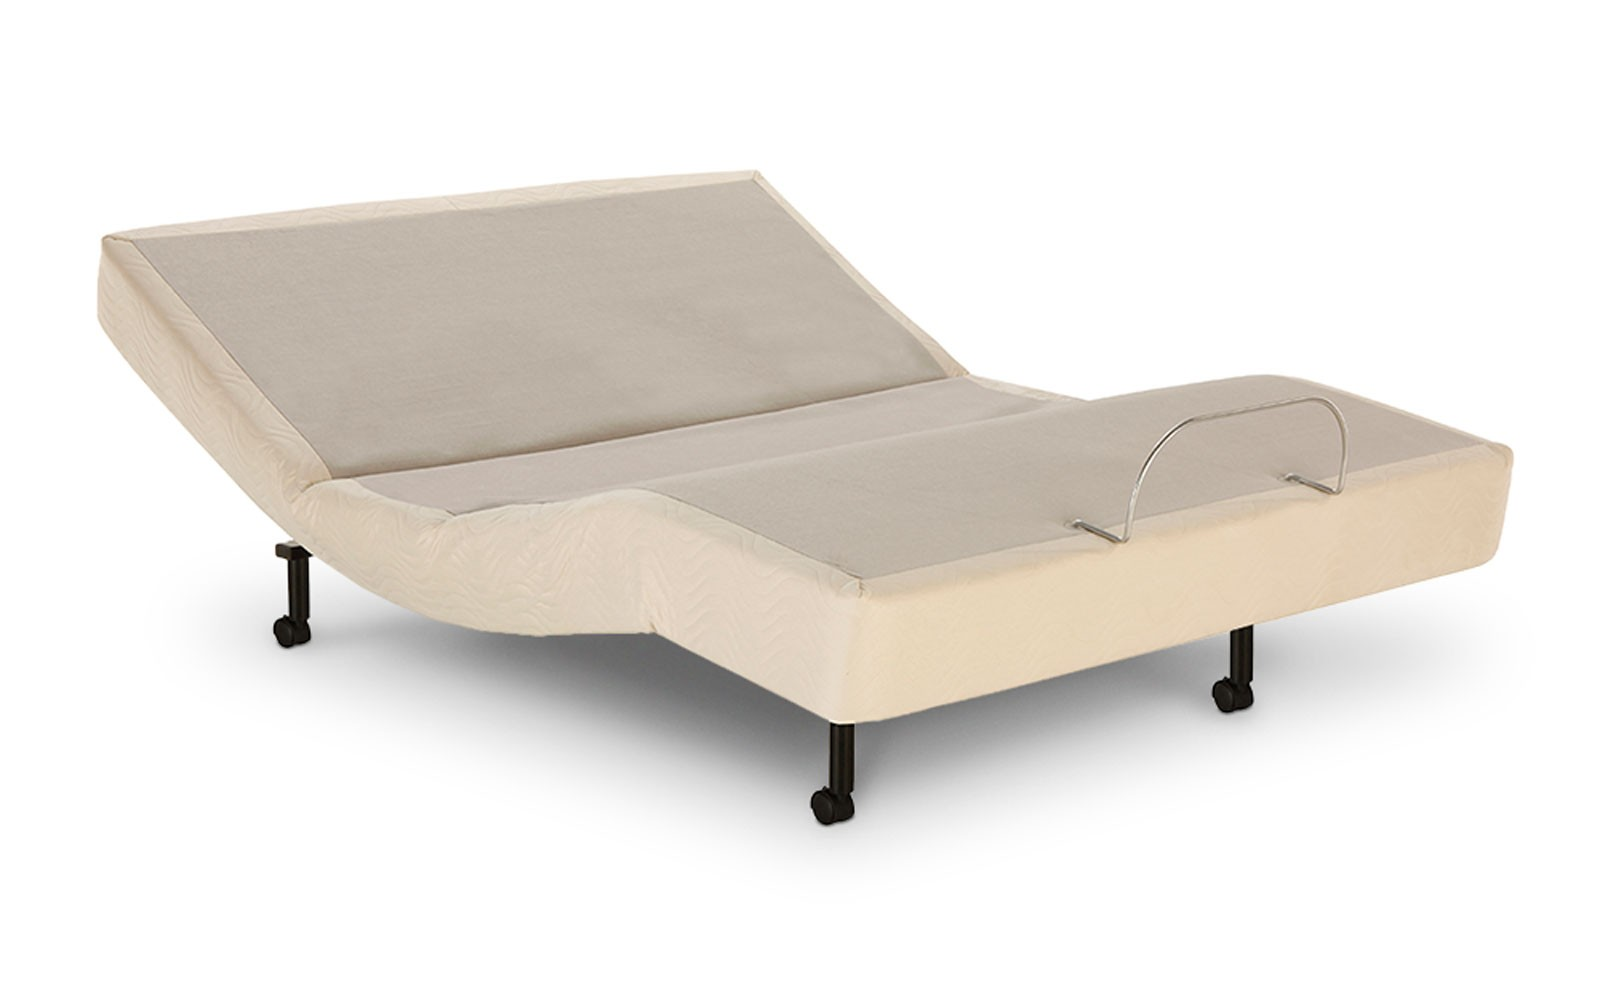 Tempurpedic Adjustable Base – New Style for Ease Dynamic Furniture ...